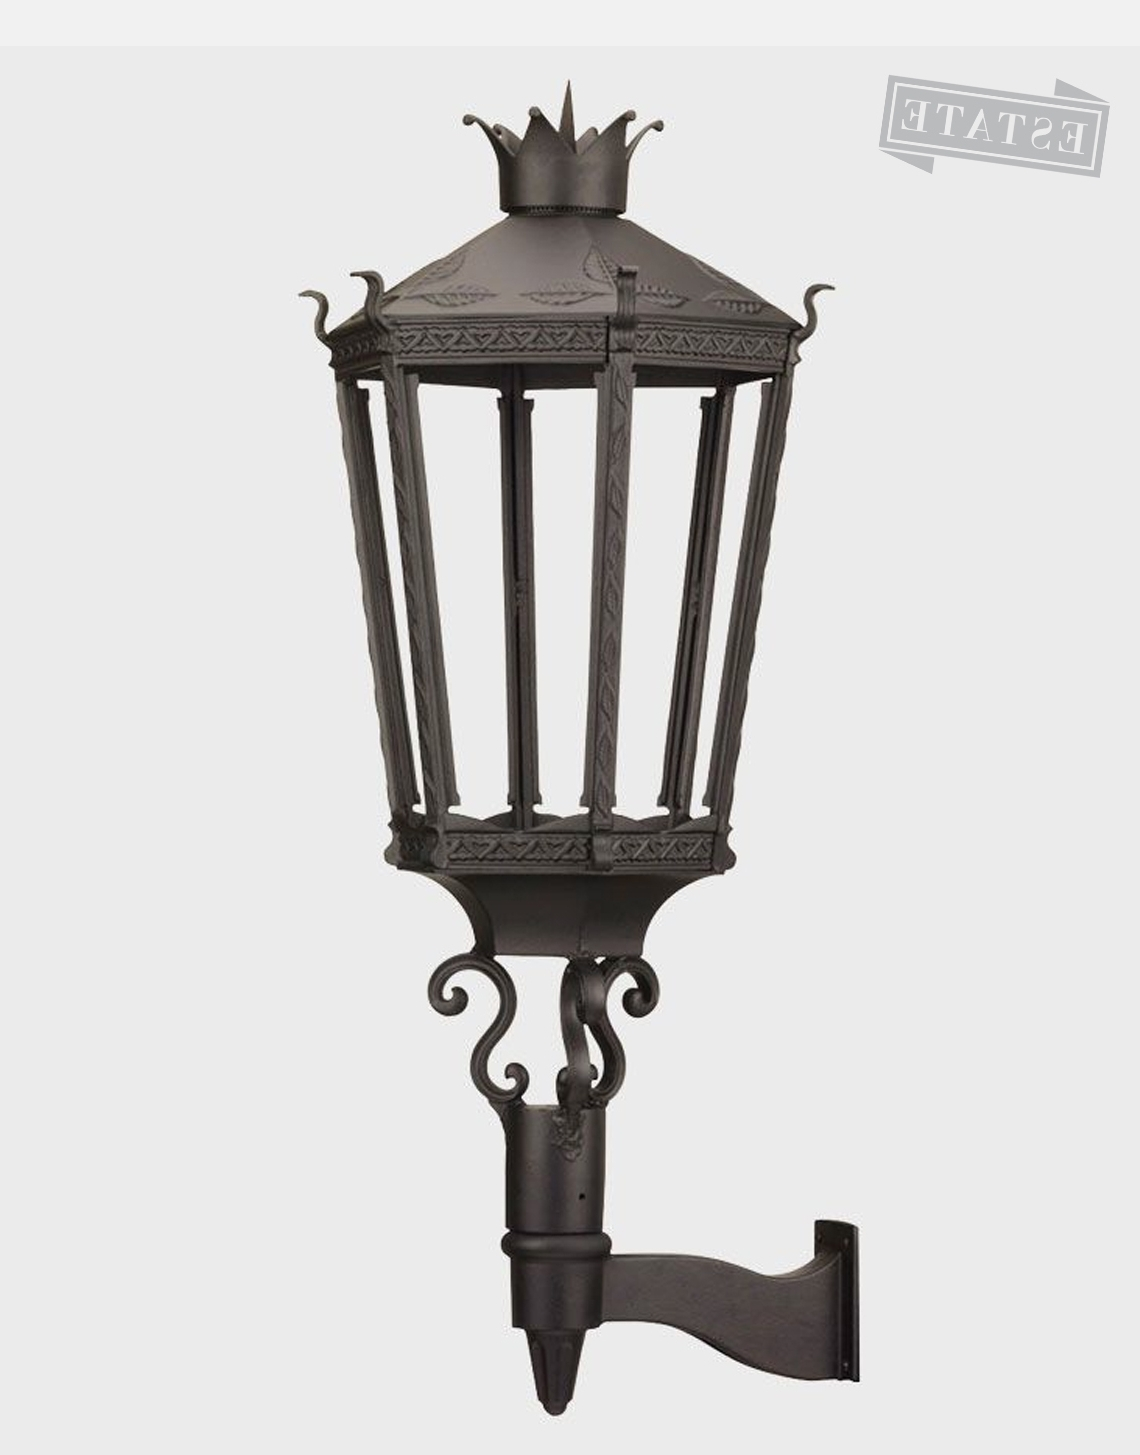 American Gas Lamp Works Regarding Outdoor Wall Mount Gas Lights (Gallery 11 of 20)